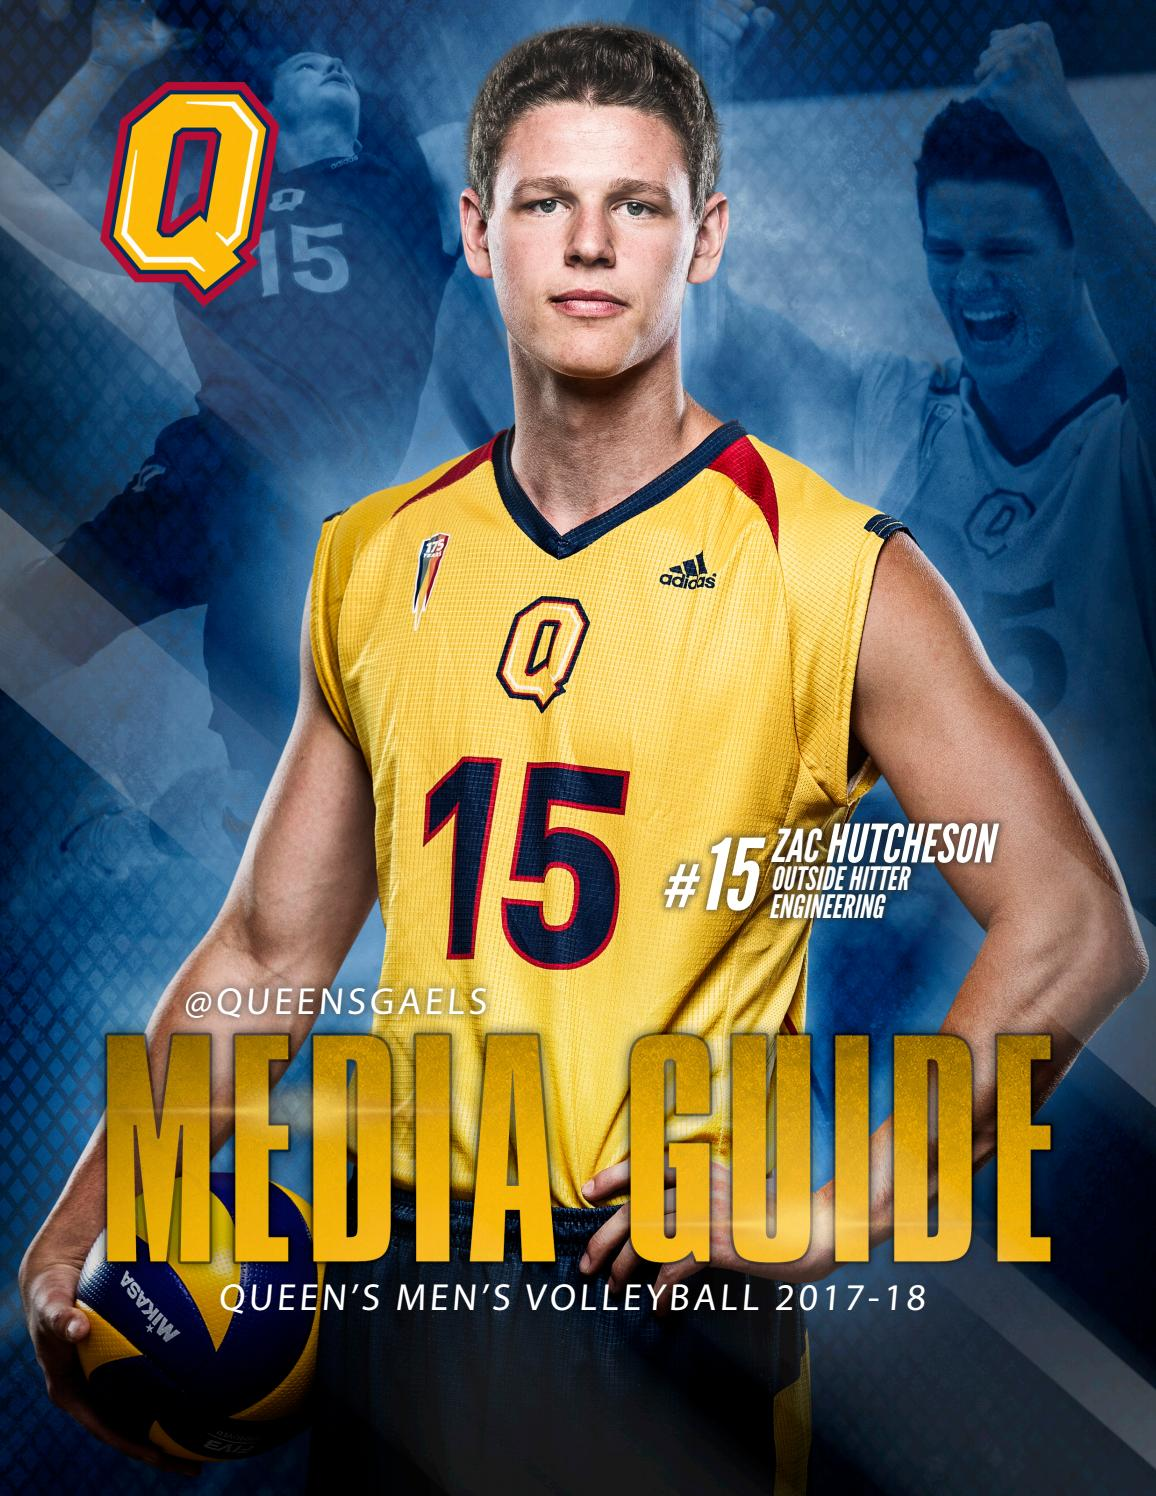 2017-18 U SPORTS Queen's Men's Volleyball Media Guide by